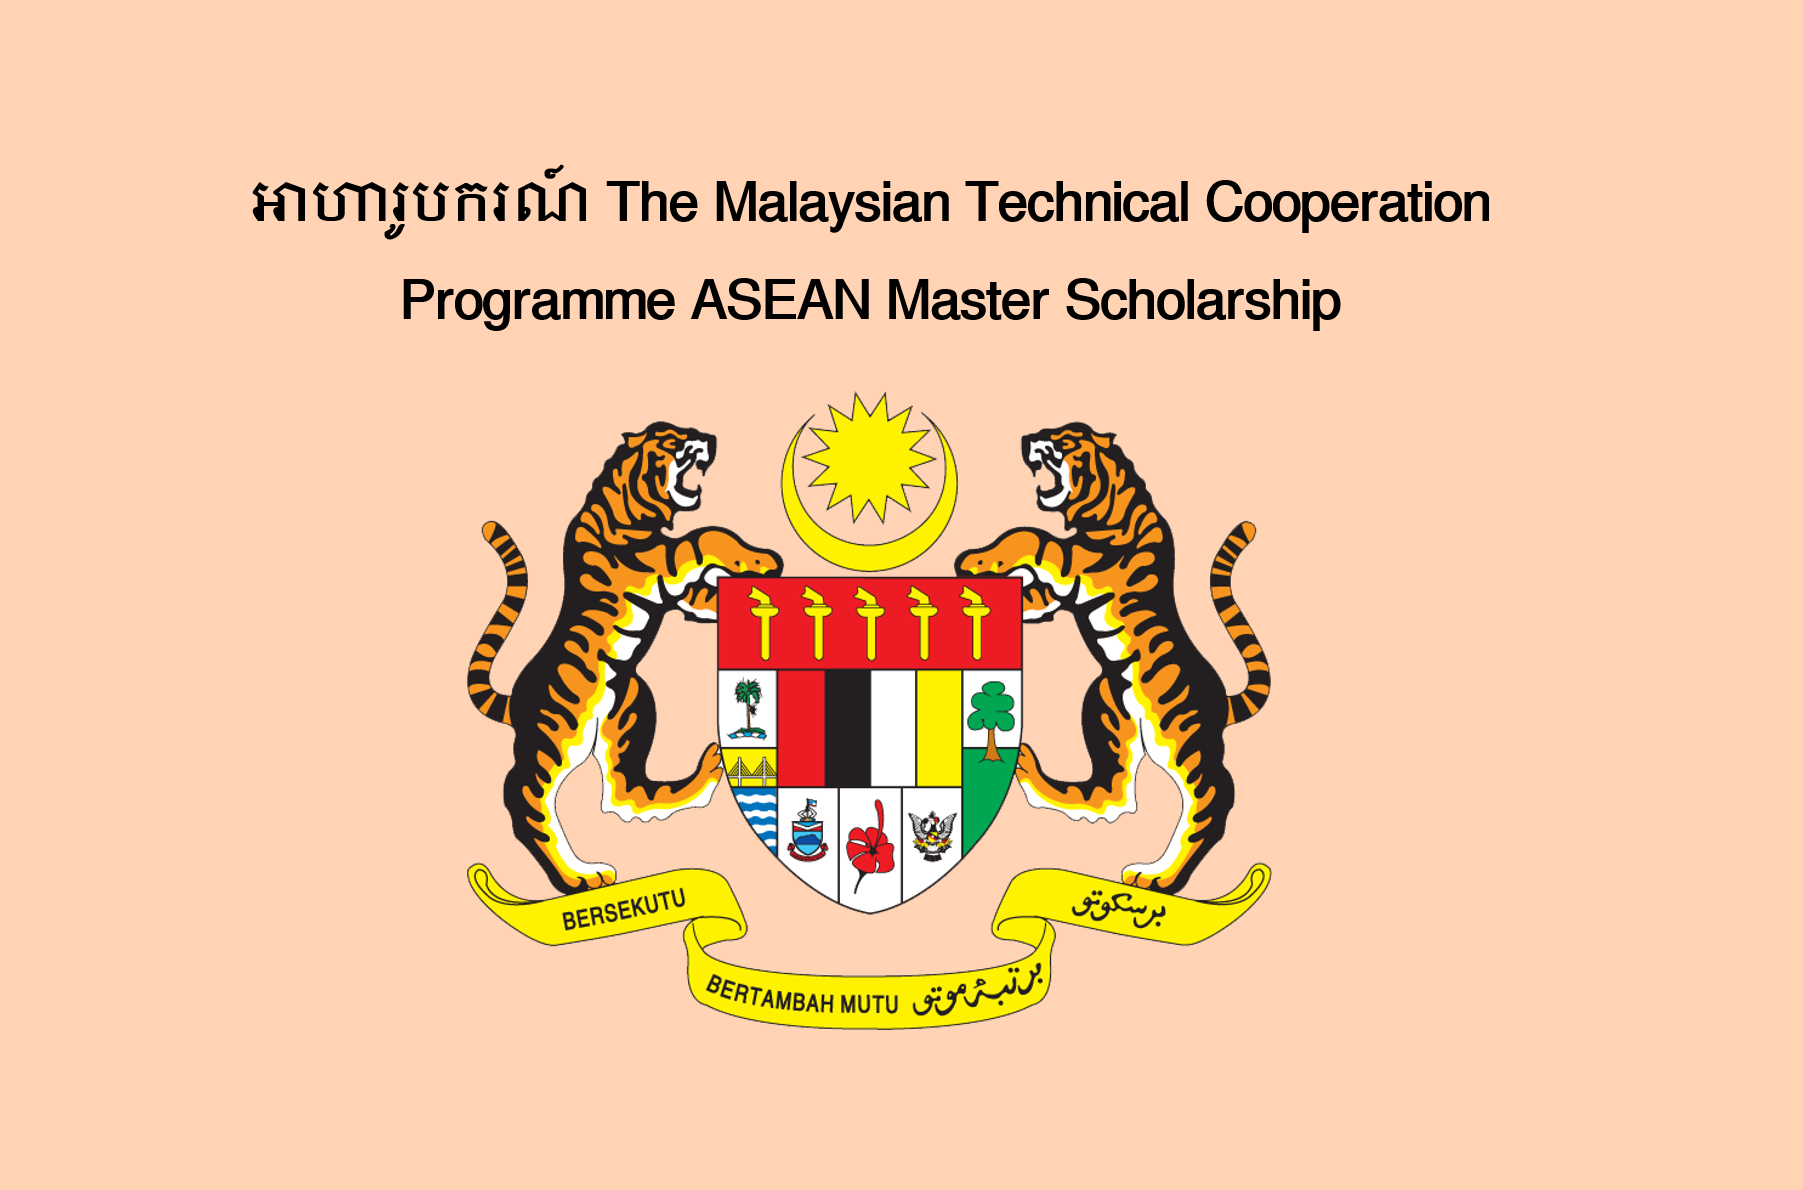 The Malaysian Technical Cooperation Programme ASEAN Master Scholarship